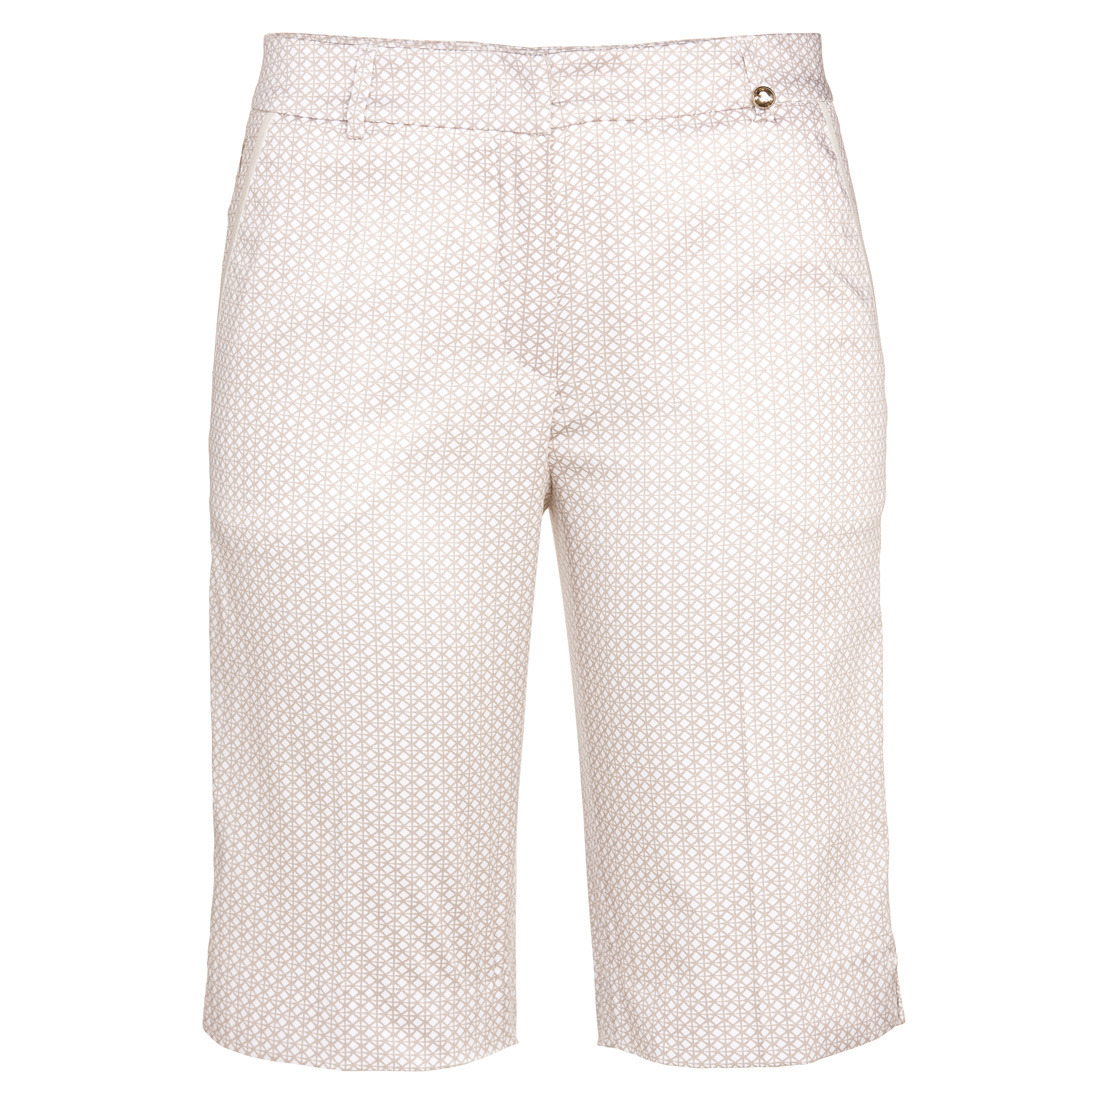 Damen Stretch Golf-Bermuda mit modischem Print in Regular Fit